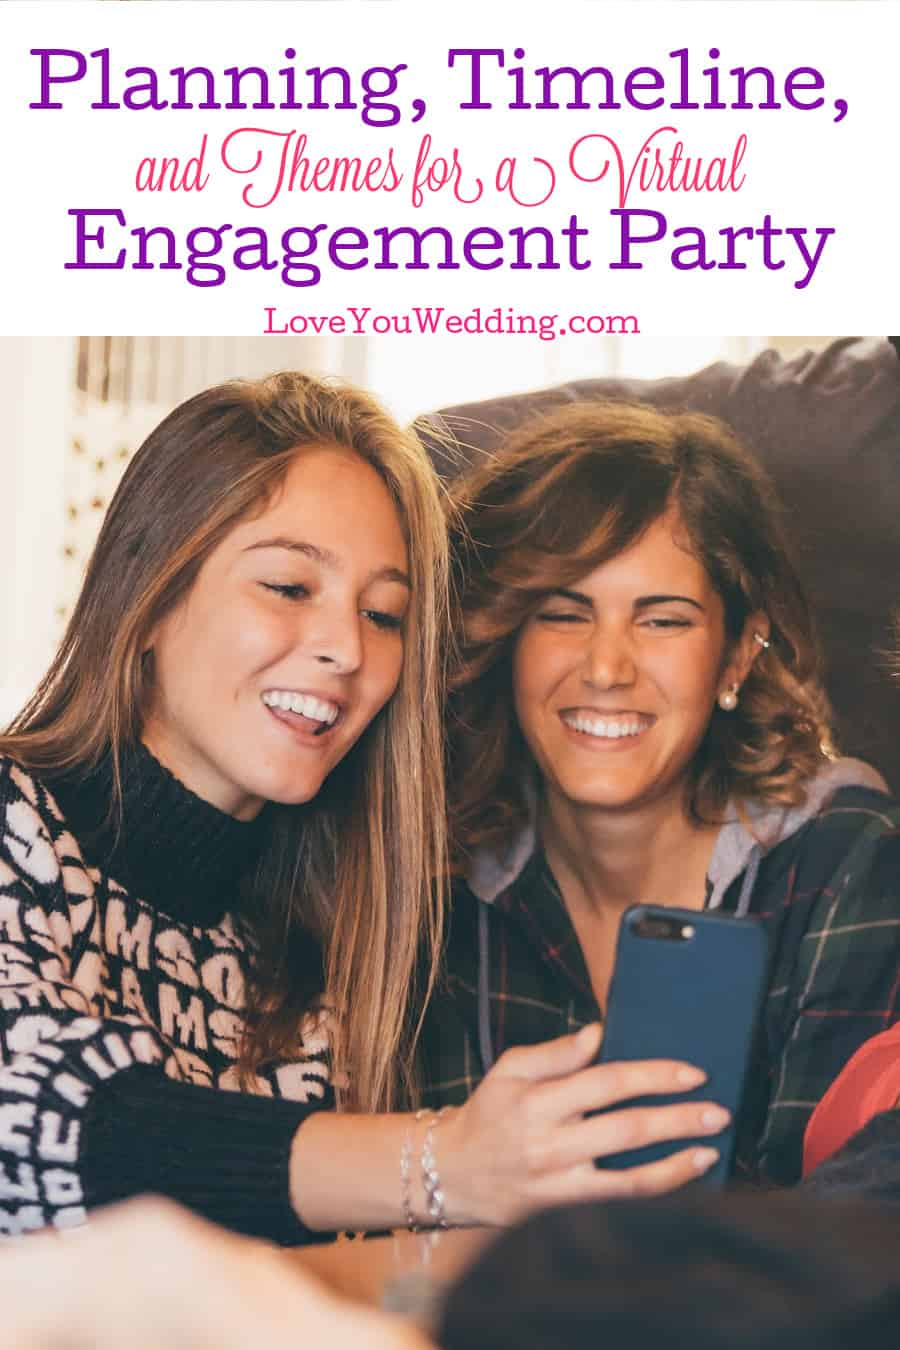 Wondering how to host a virtual engagement party? We've covered everything from your planning timeline to the best themes! Check it out!